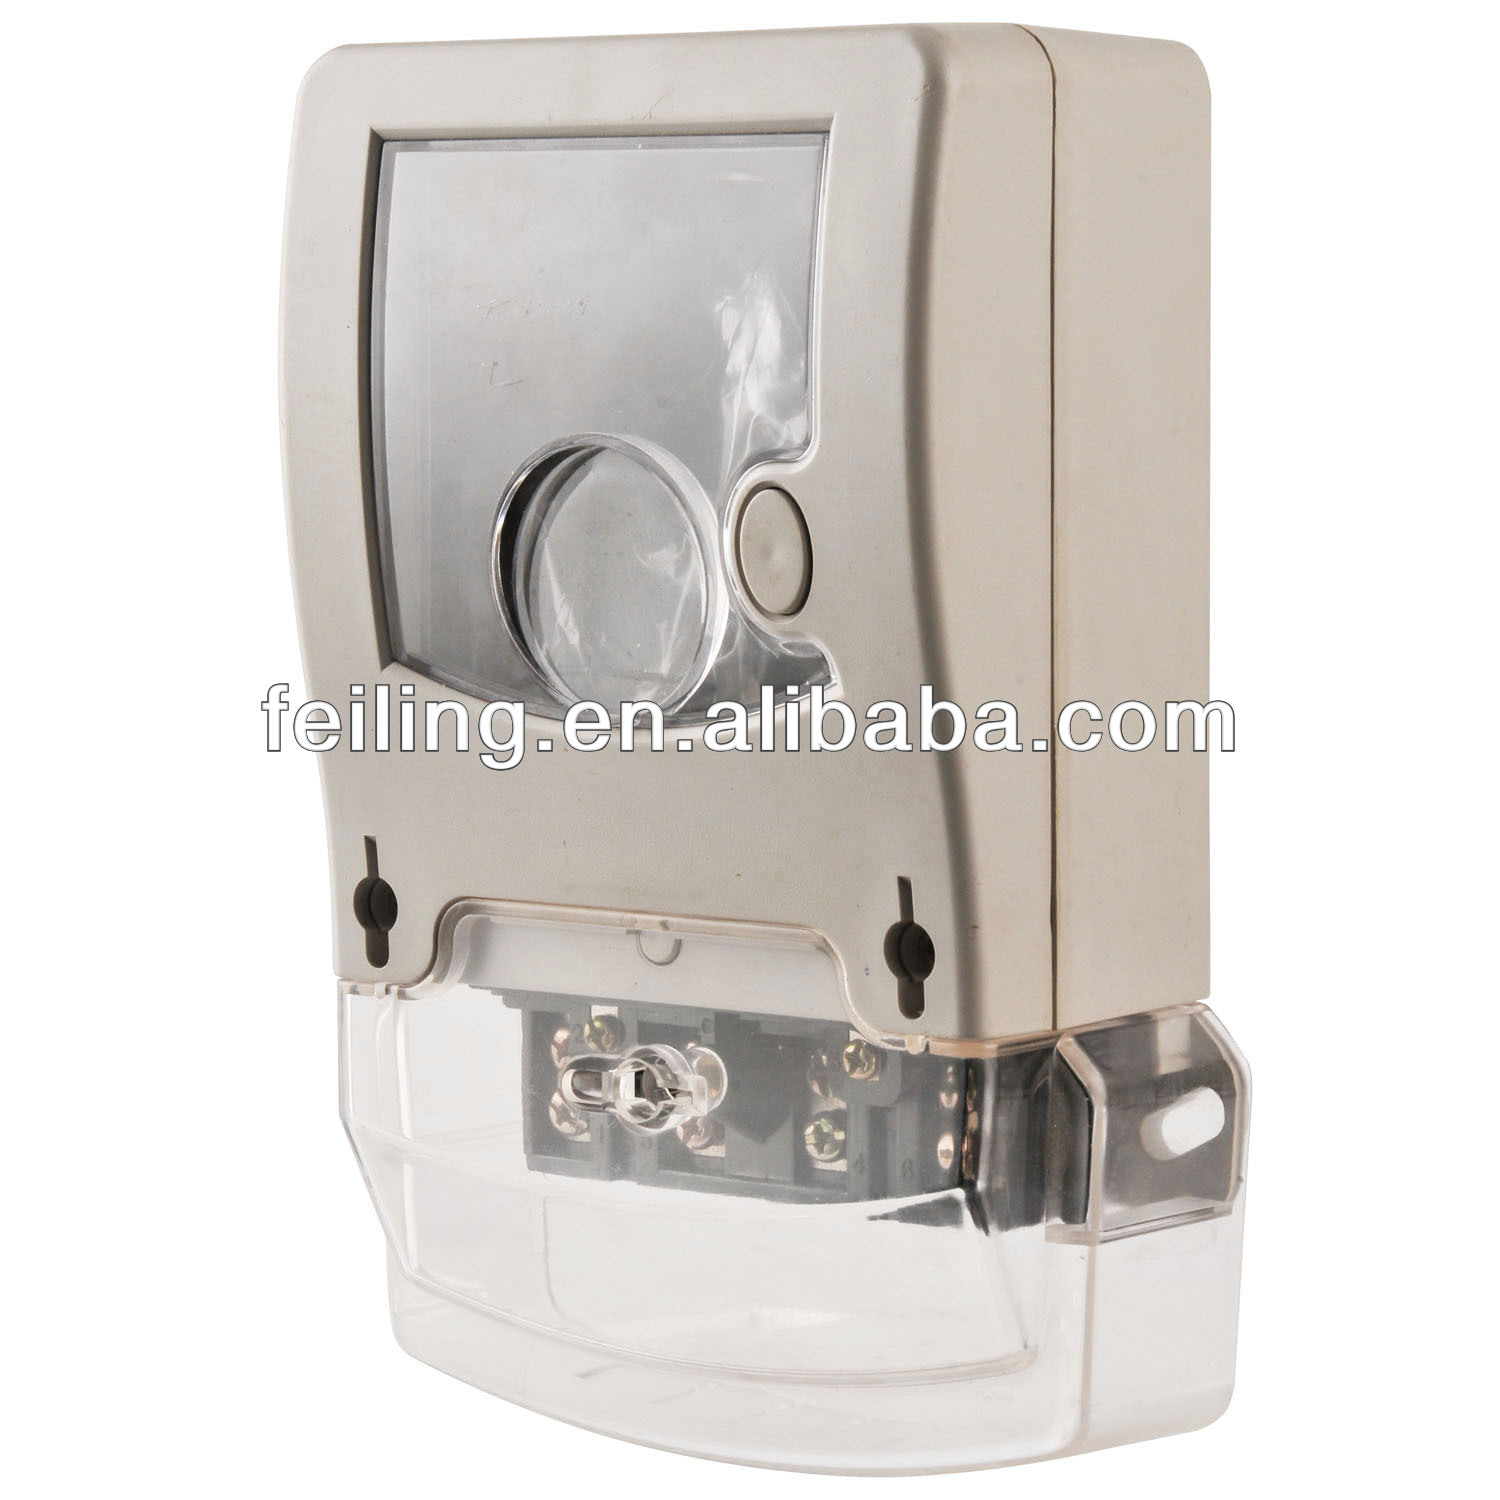 DDS-009-3 fireproof and weatherproof waterproof small tin box